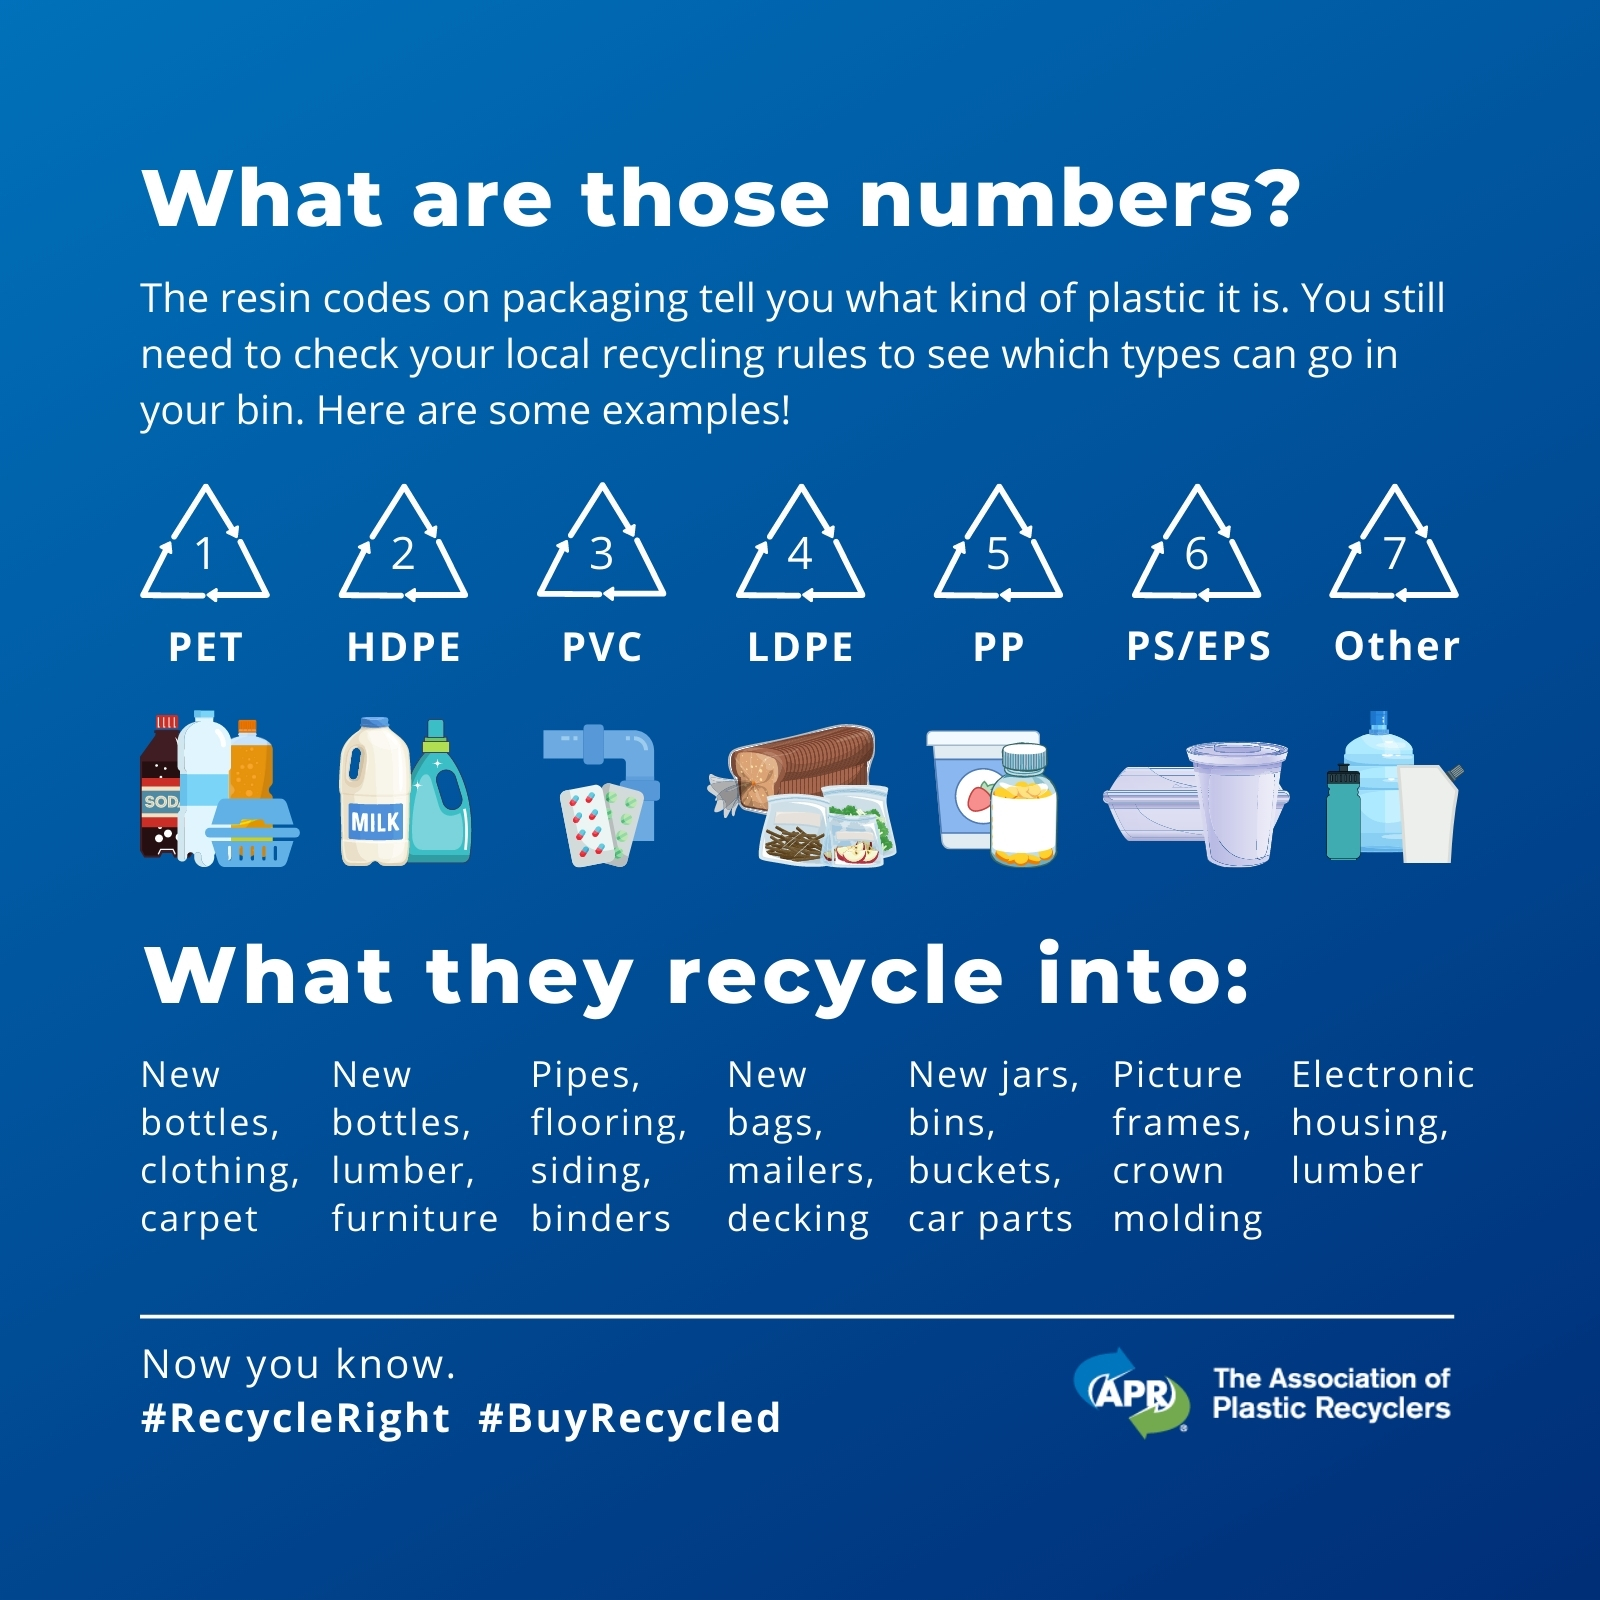 he resin codes on packaging tell you what kind of plastic it is. You still need to check your local recycling rules to see which types can go in your bin. Here are some examples of what types of packaging typically have these resin codes, and just a few of the recycled items that they become.